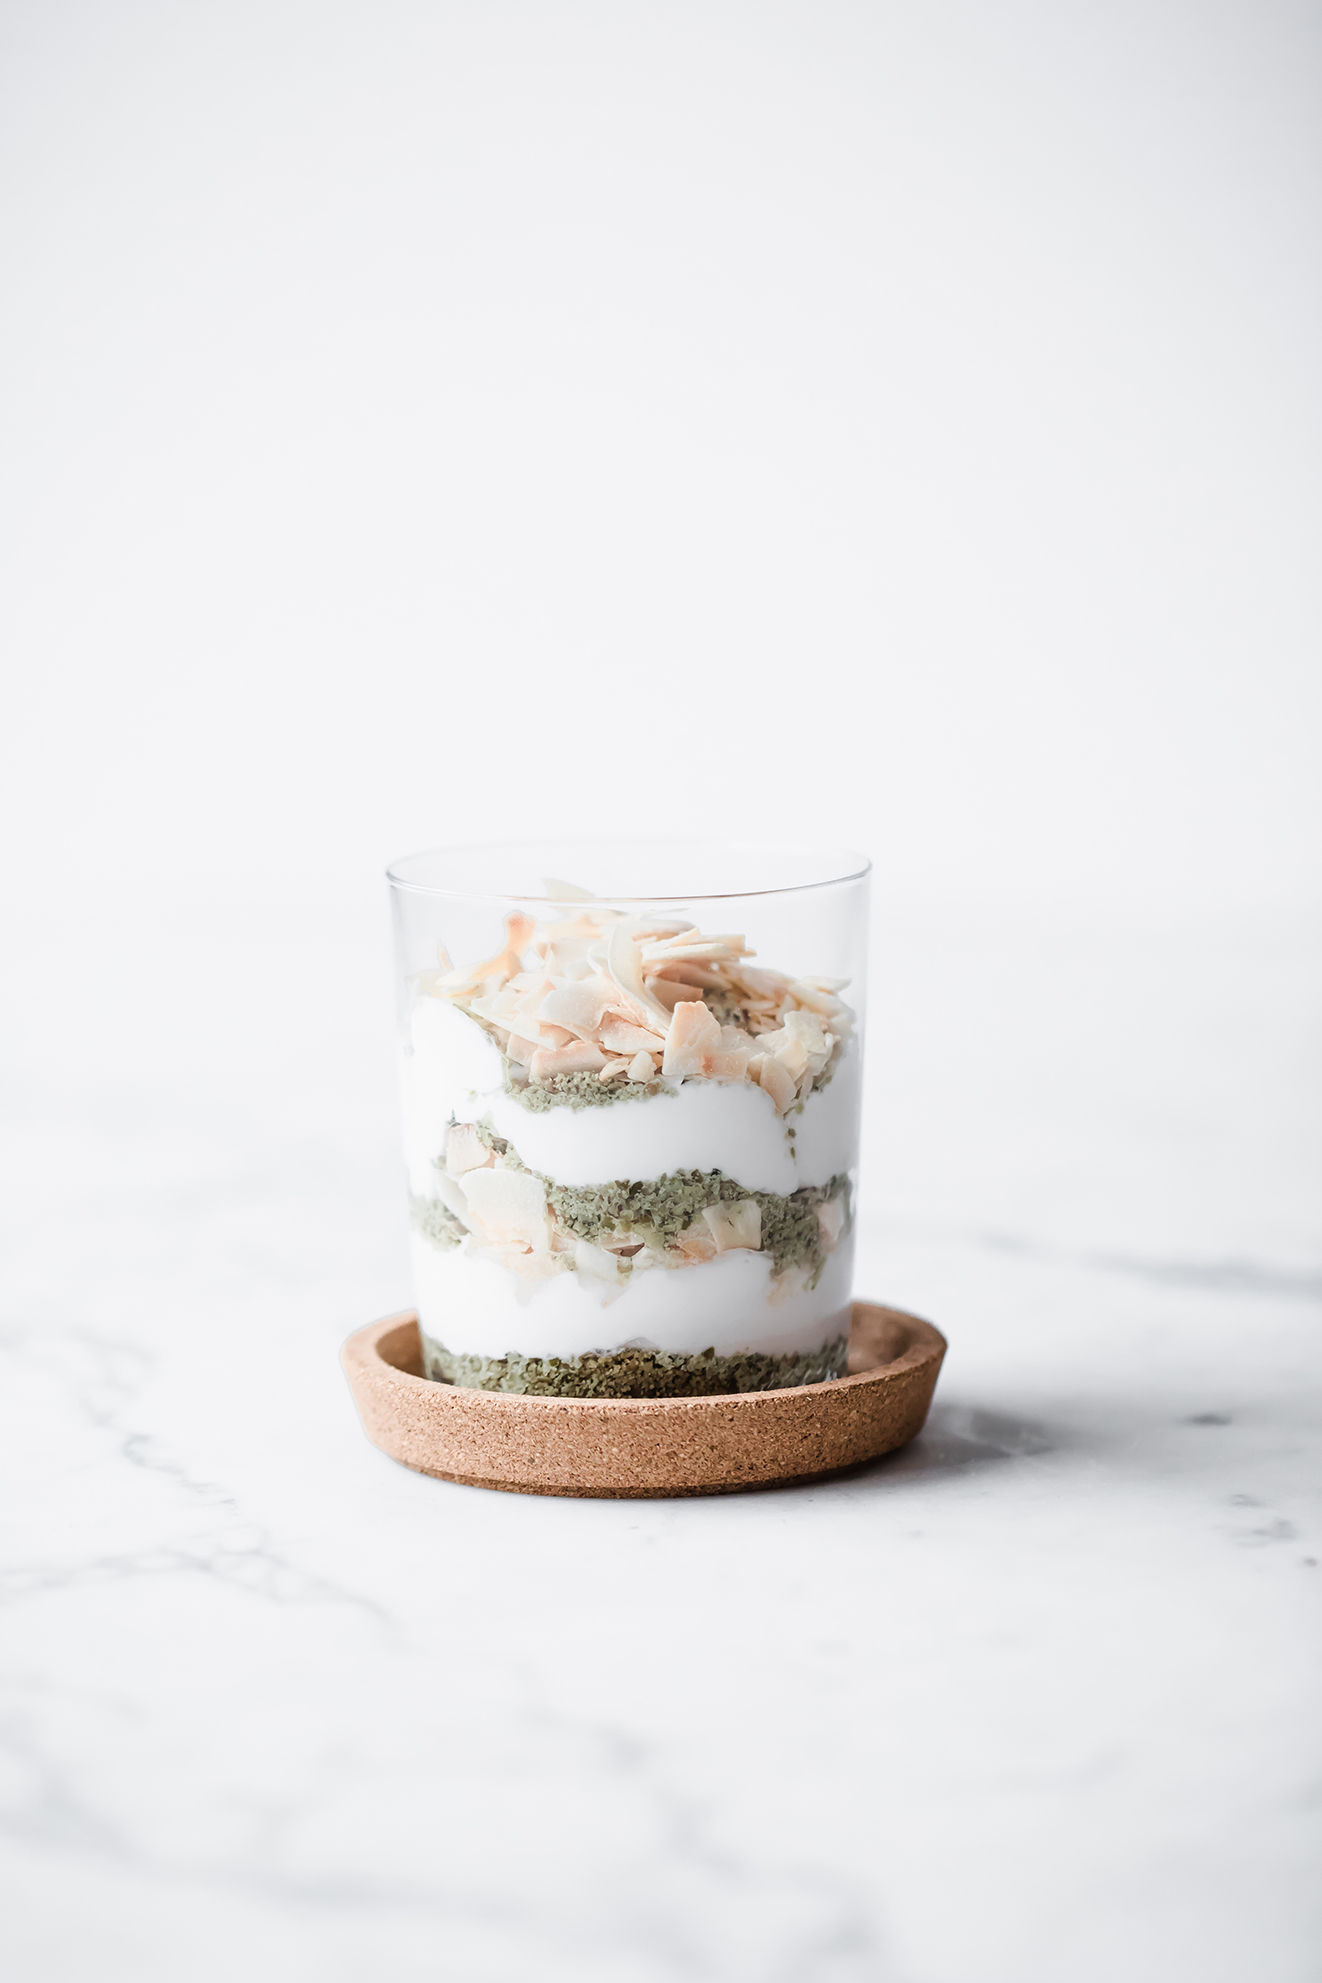 coconut yoghurt, london food photographer, Modern Food Stories, 5 Ingredient Vegan Coconut Jars